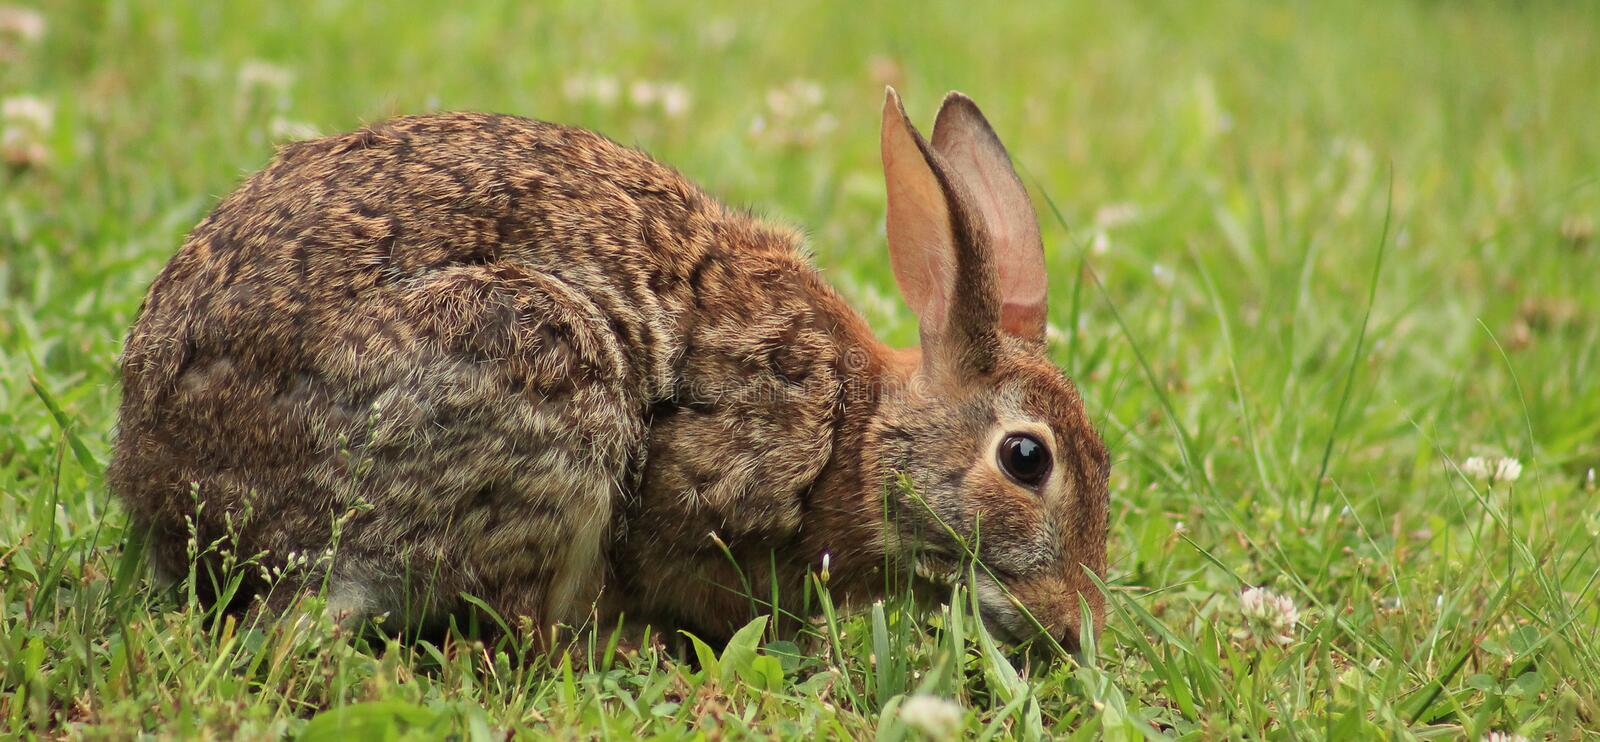 Rabbit eating clover. Young rabbit in a field of clover at the park stock photos